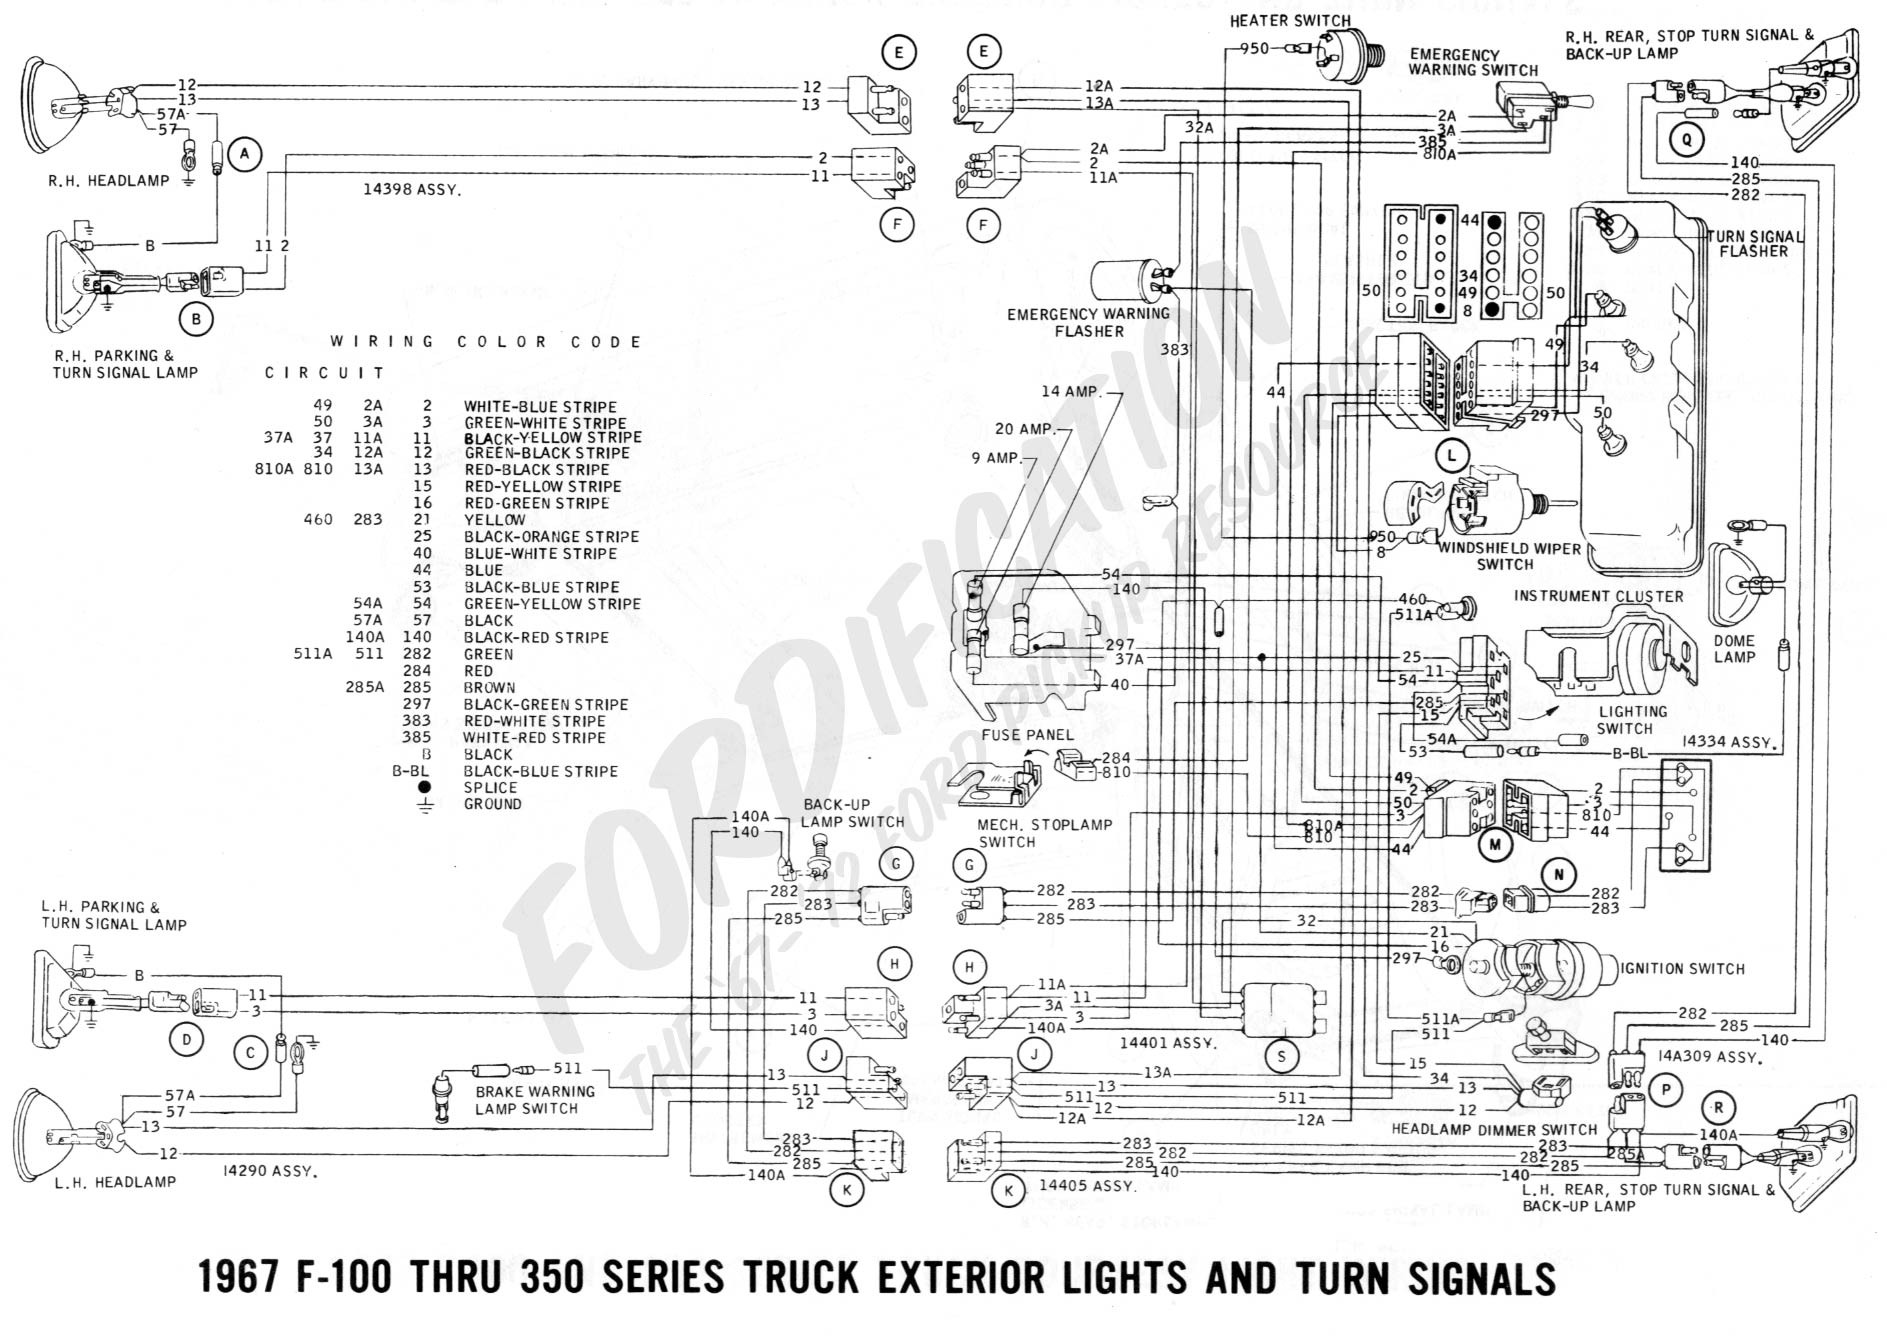 1955 ford turn signal wiring diagram wiring diagram 1957 chevy wiring list of wiring diagrams